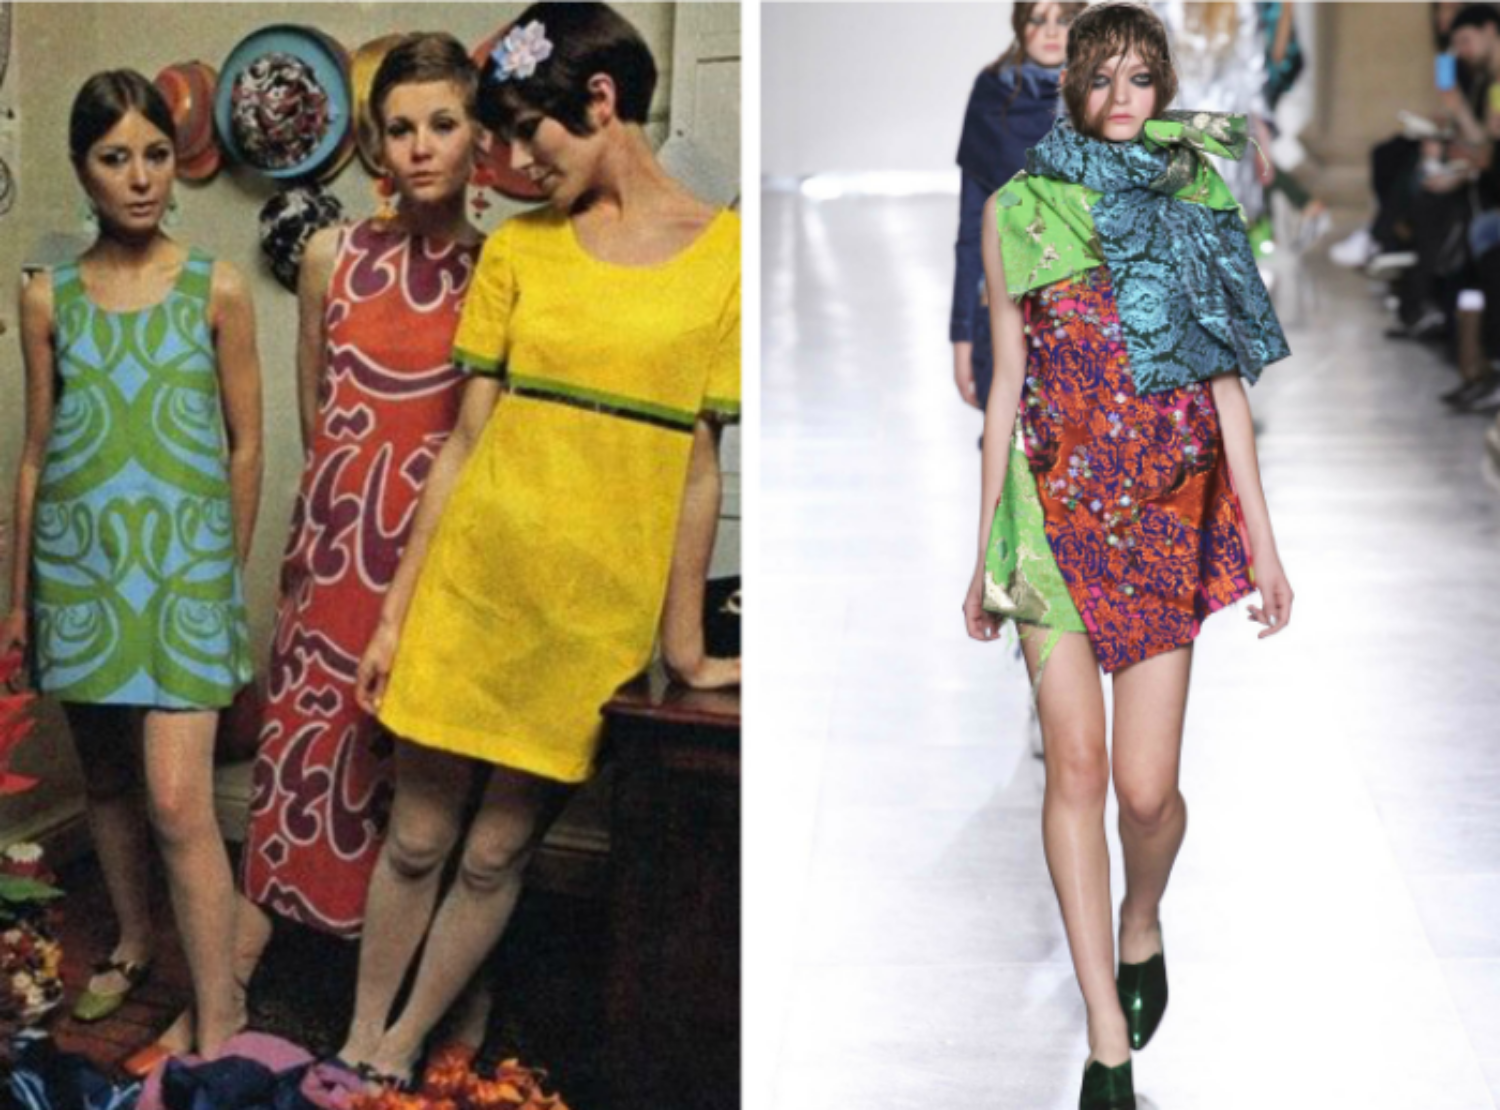 From left to right: 1960s mod dresses in green, red, and yellow, and the Marques' Almeida collection atFashion Week, Fall 2015.